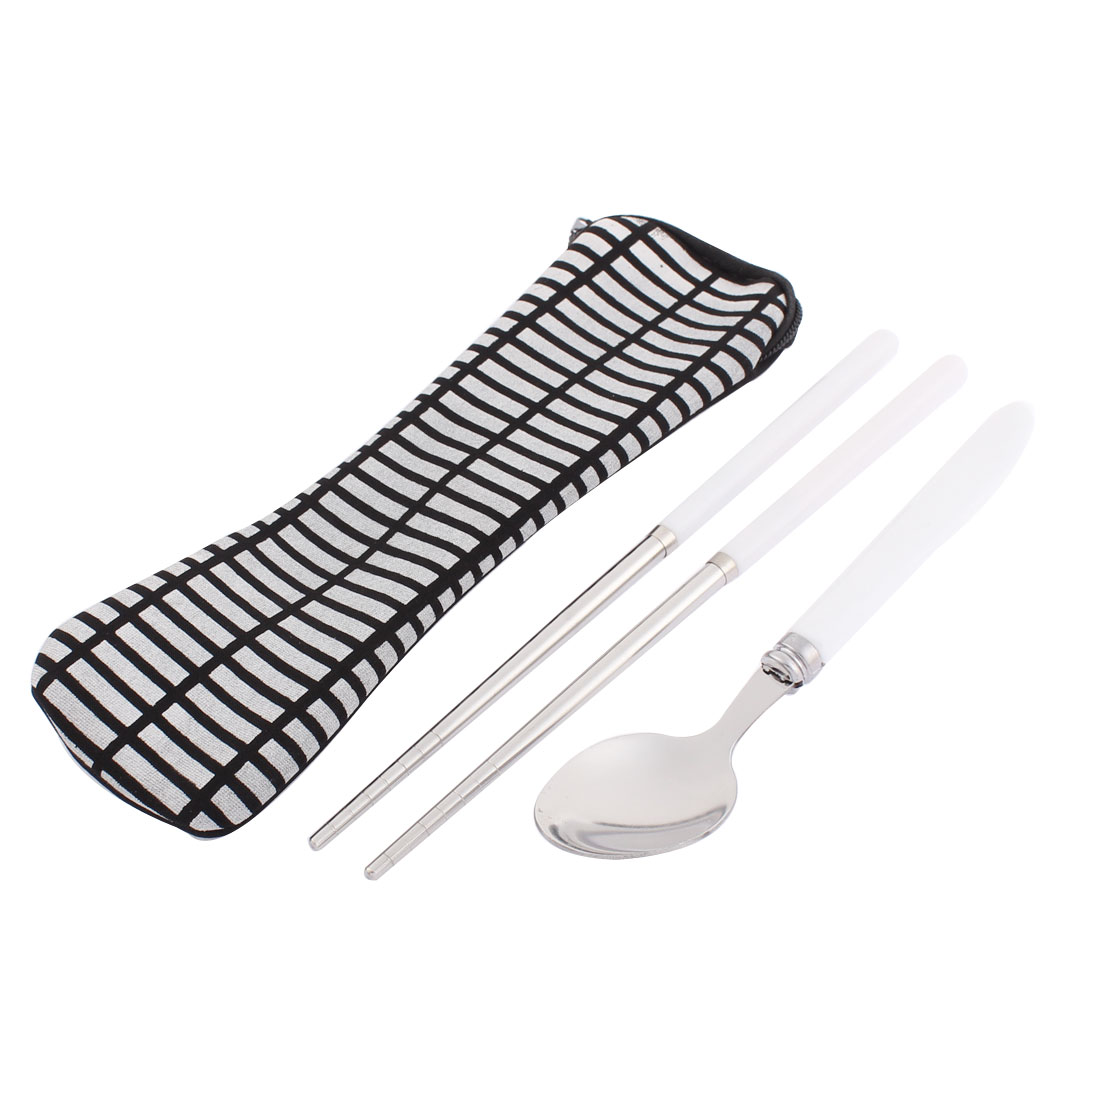 Travel Portable Plastic Handle Lunch Spoon Chopsticks Tableware 2 in 1 w Bag